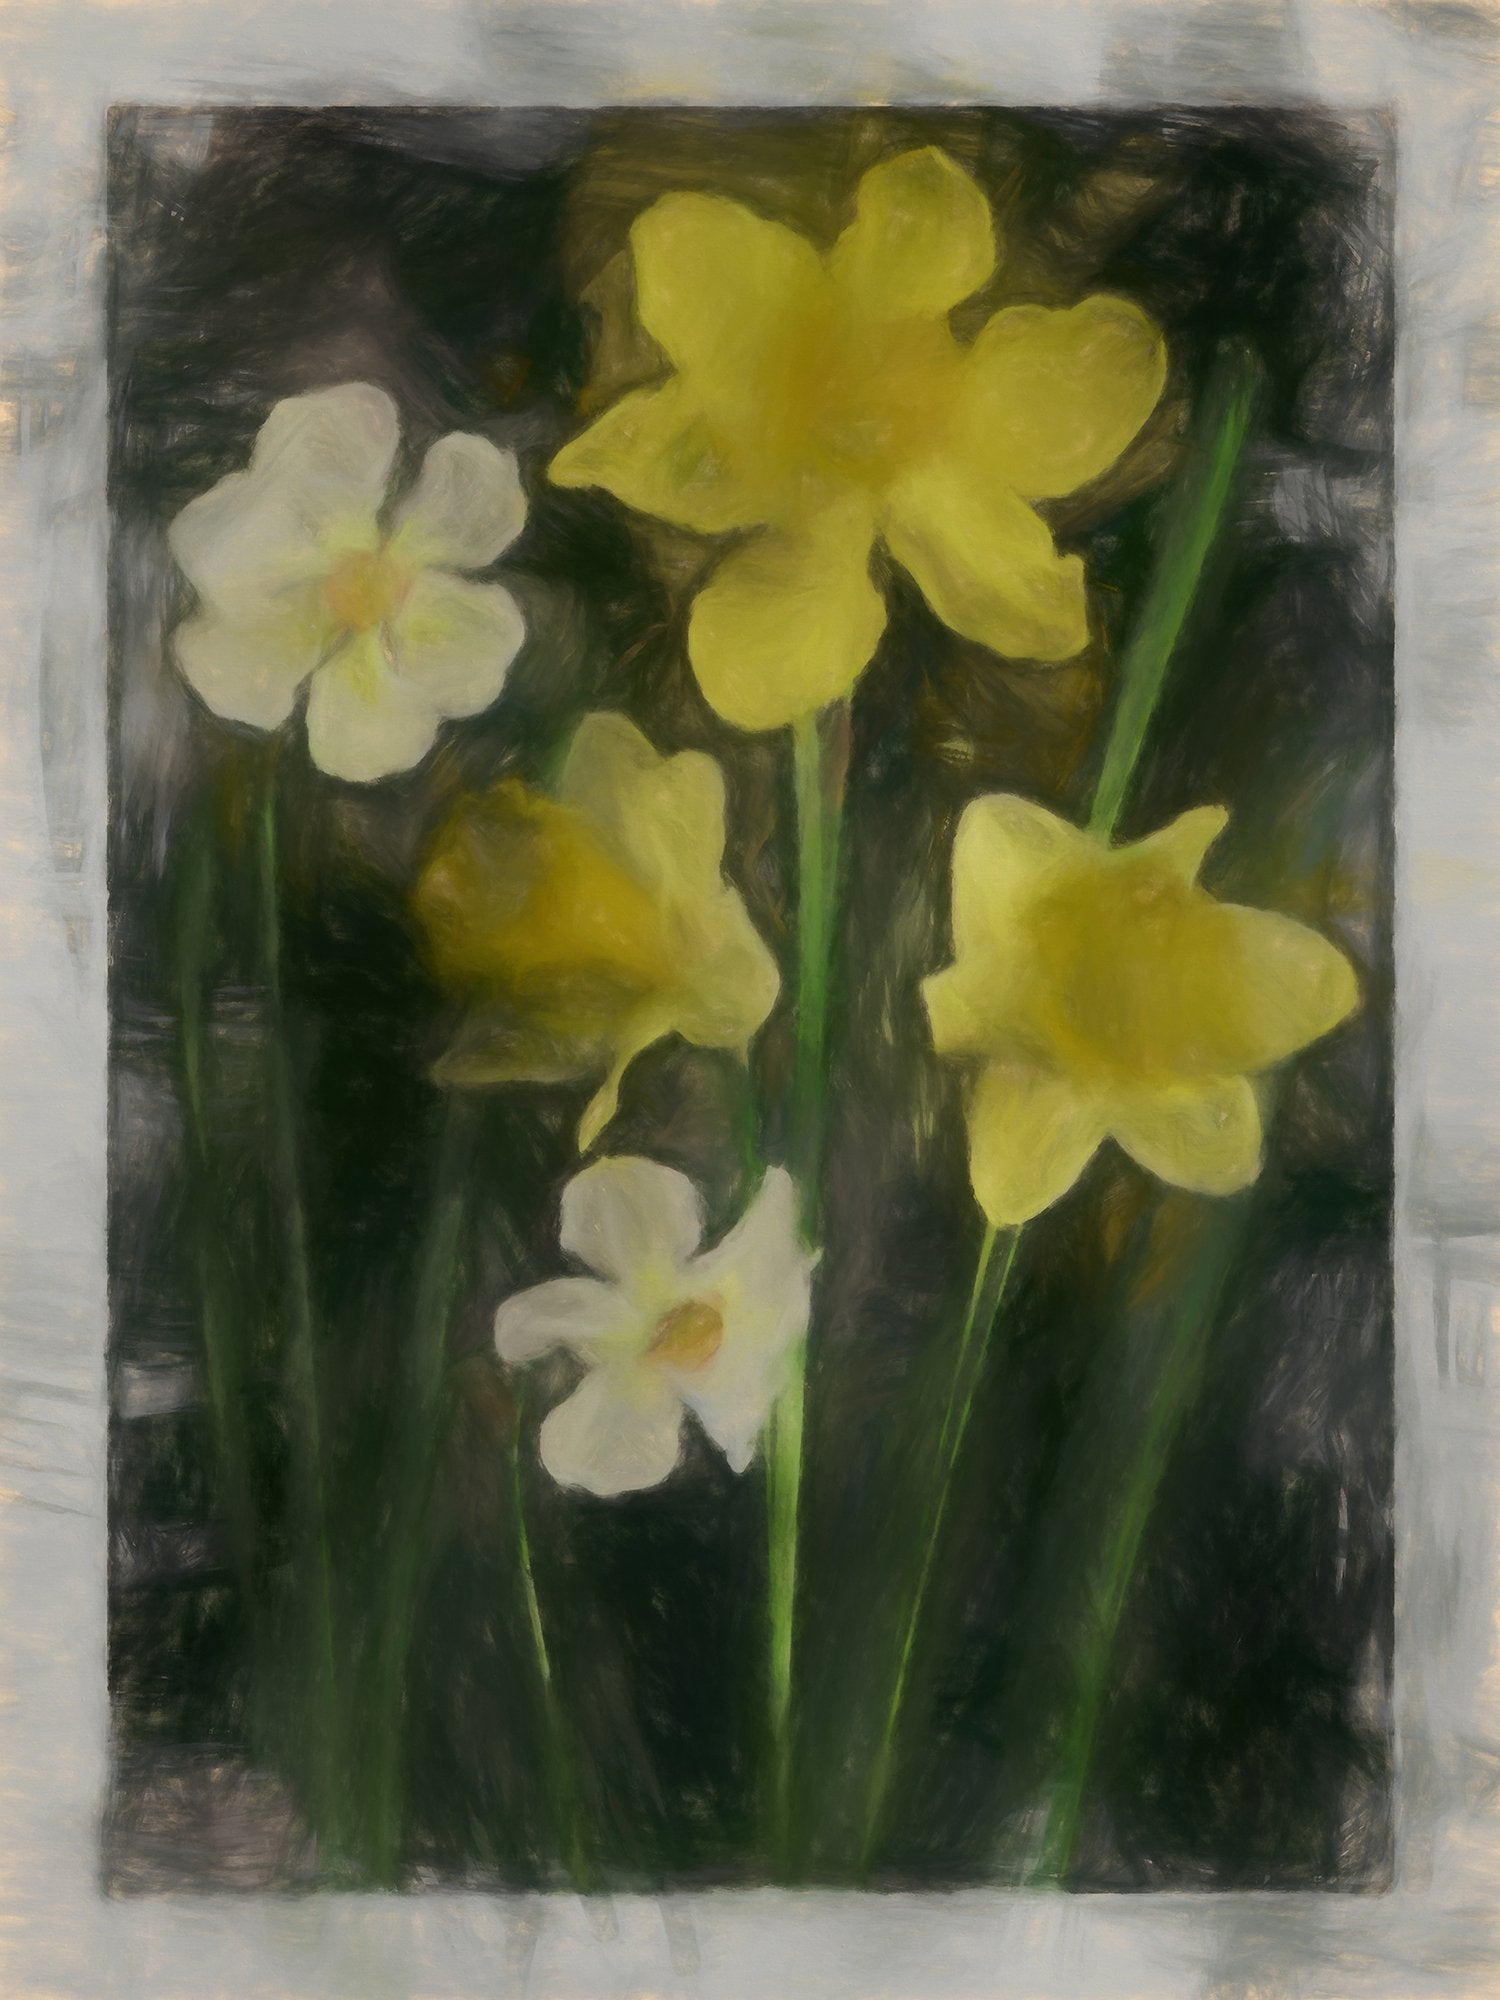 Narcissi of Several Kinds, Reworked, Series 2